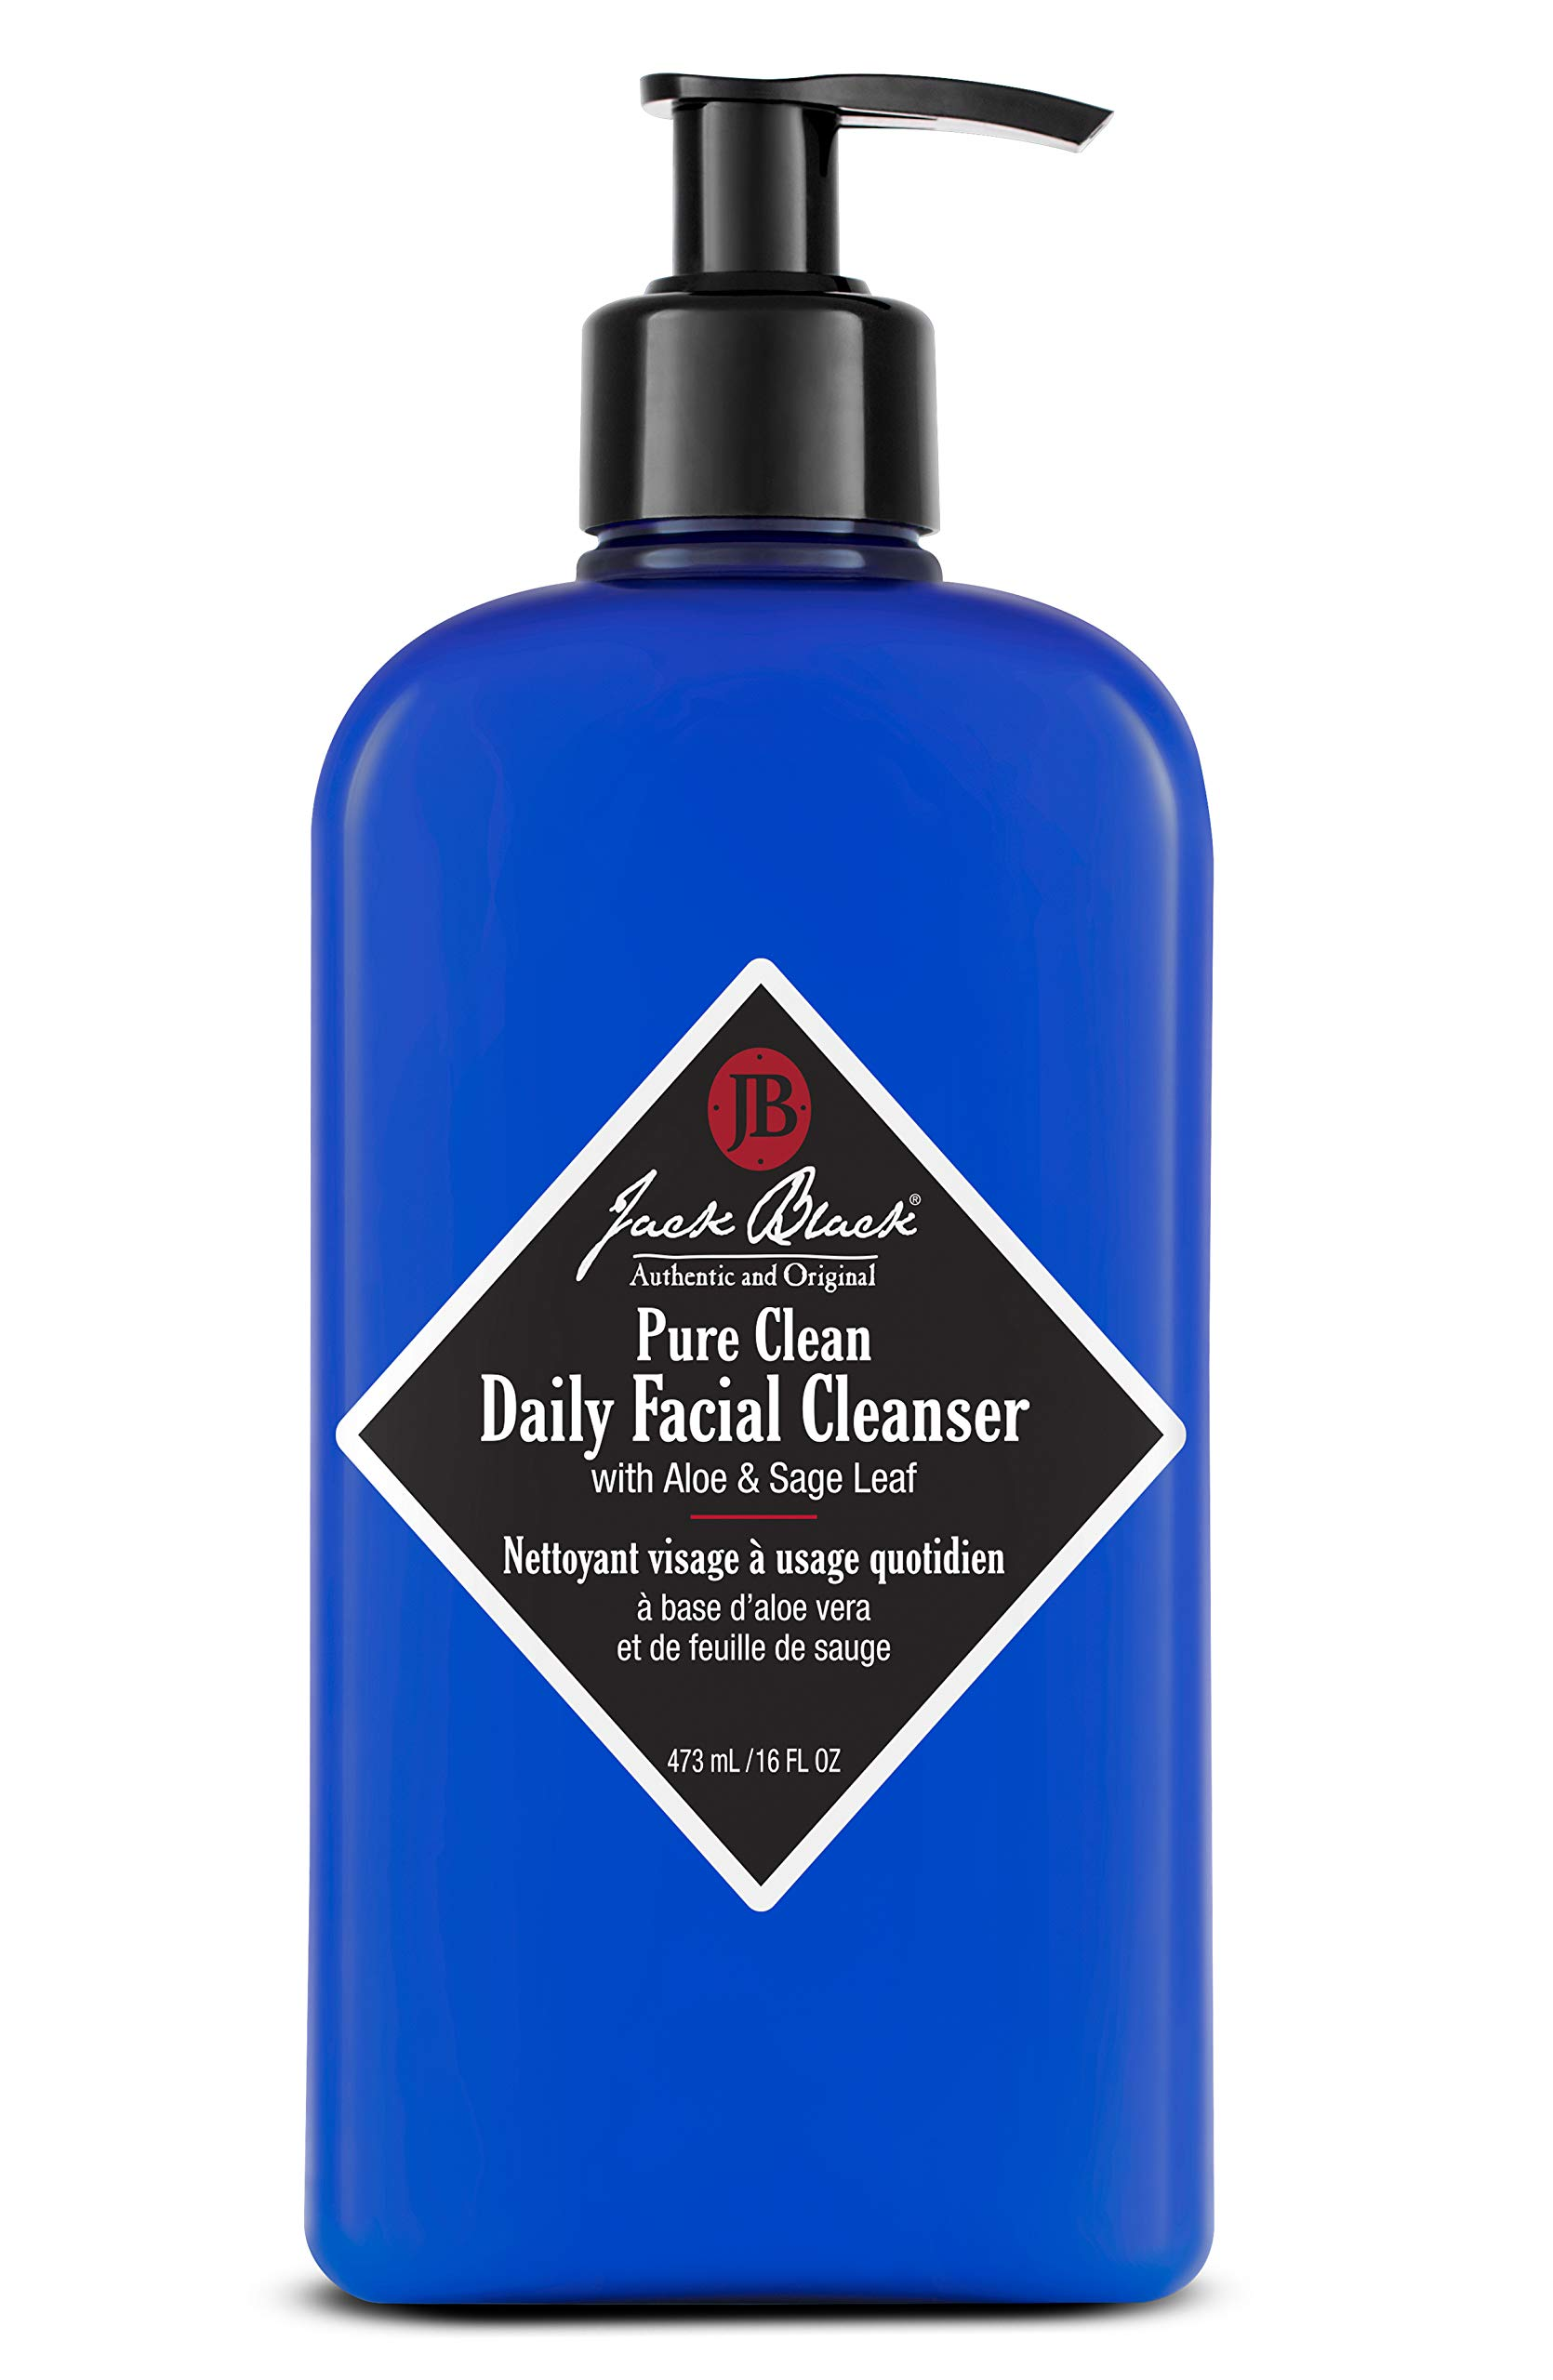 Jack Black - Pure Clean Daily Facial Cleanser, 3, 6 and 16 fl oz - 2-in-1 Facial Cleanser and Toner, Removes Dirt and Oil, PureScience Formula, Certified Organic Ingredients, Aloe and Sage Leaf by Jack Black